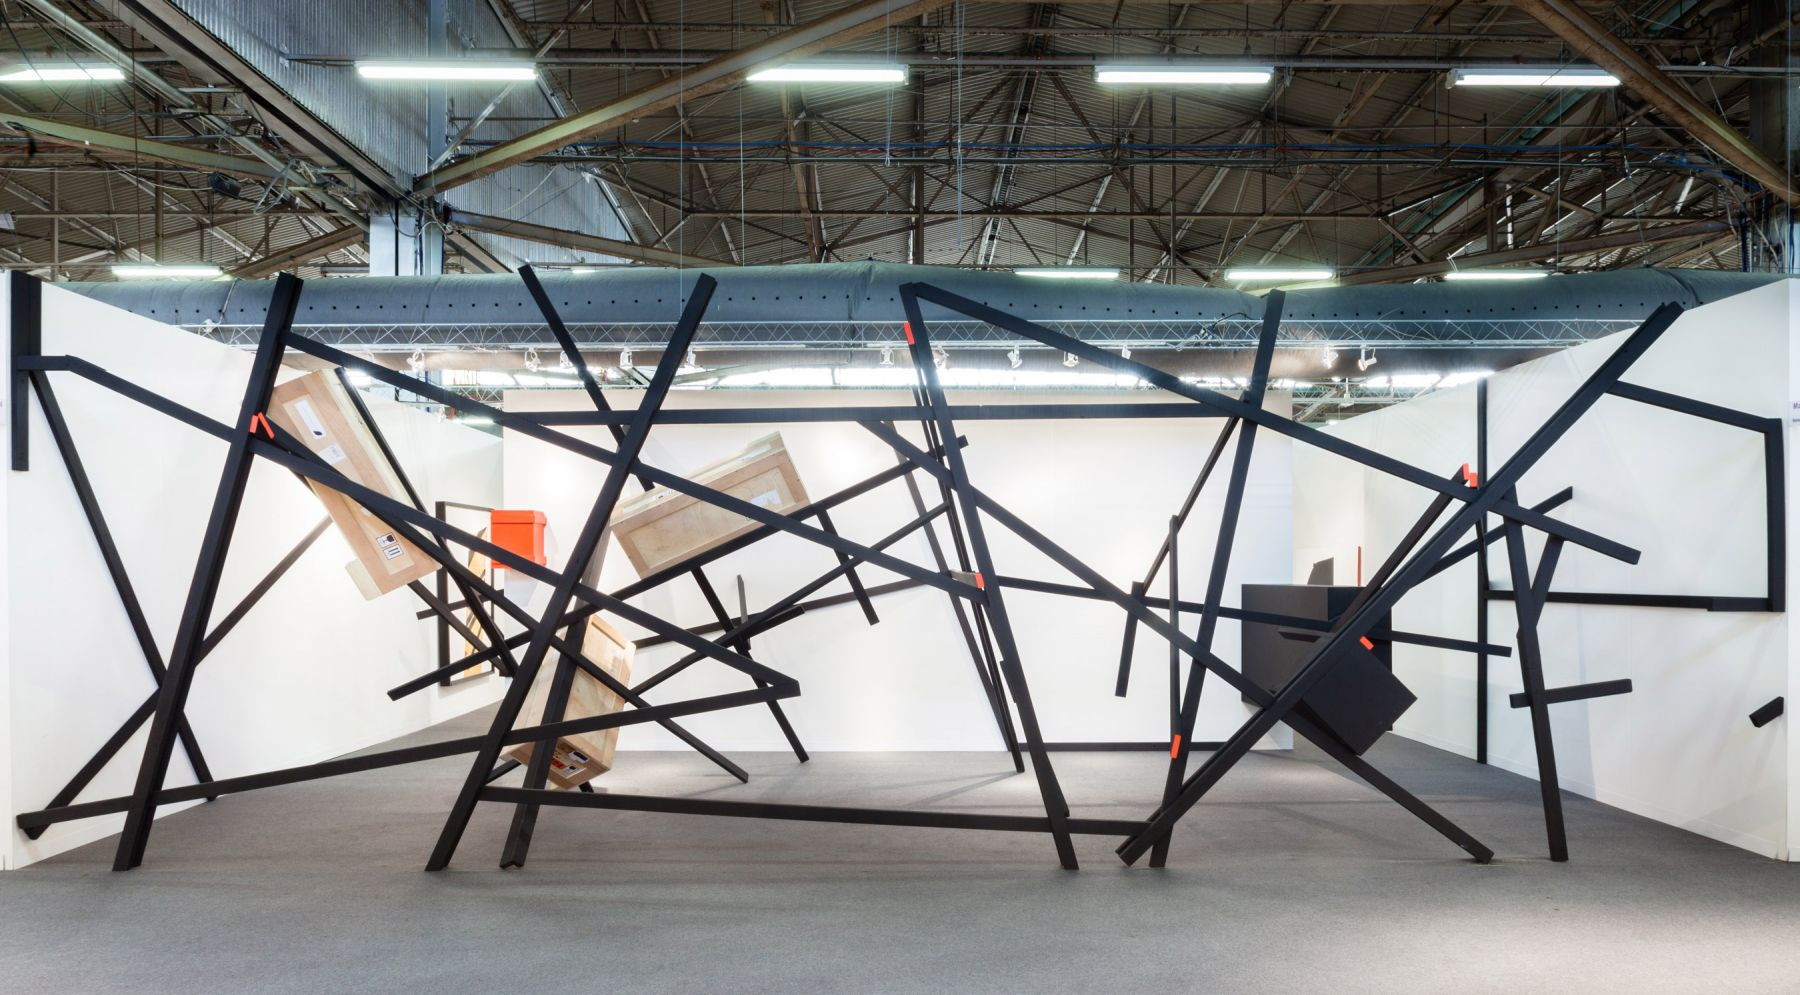 Installation View, The Armory Show 2014,Barricade I, August 7 –September 12, 2014